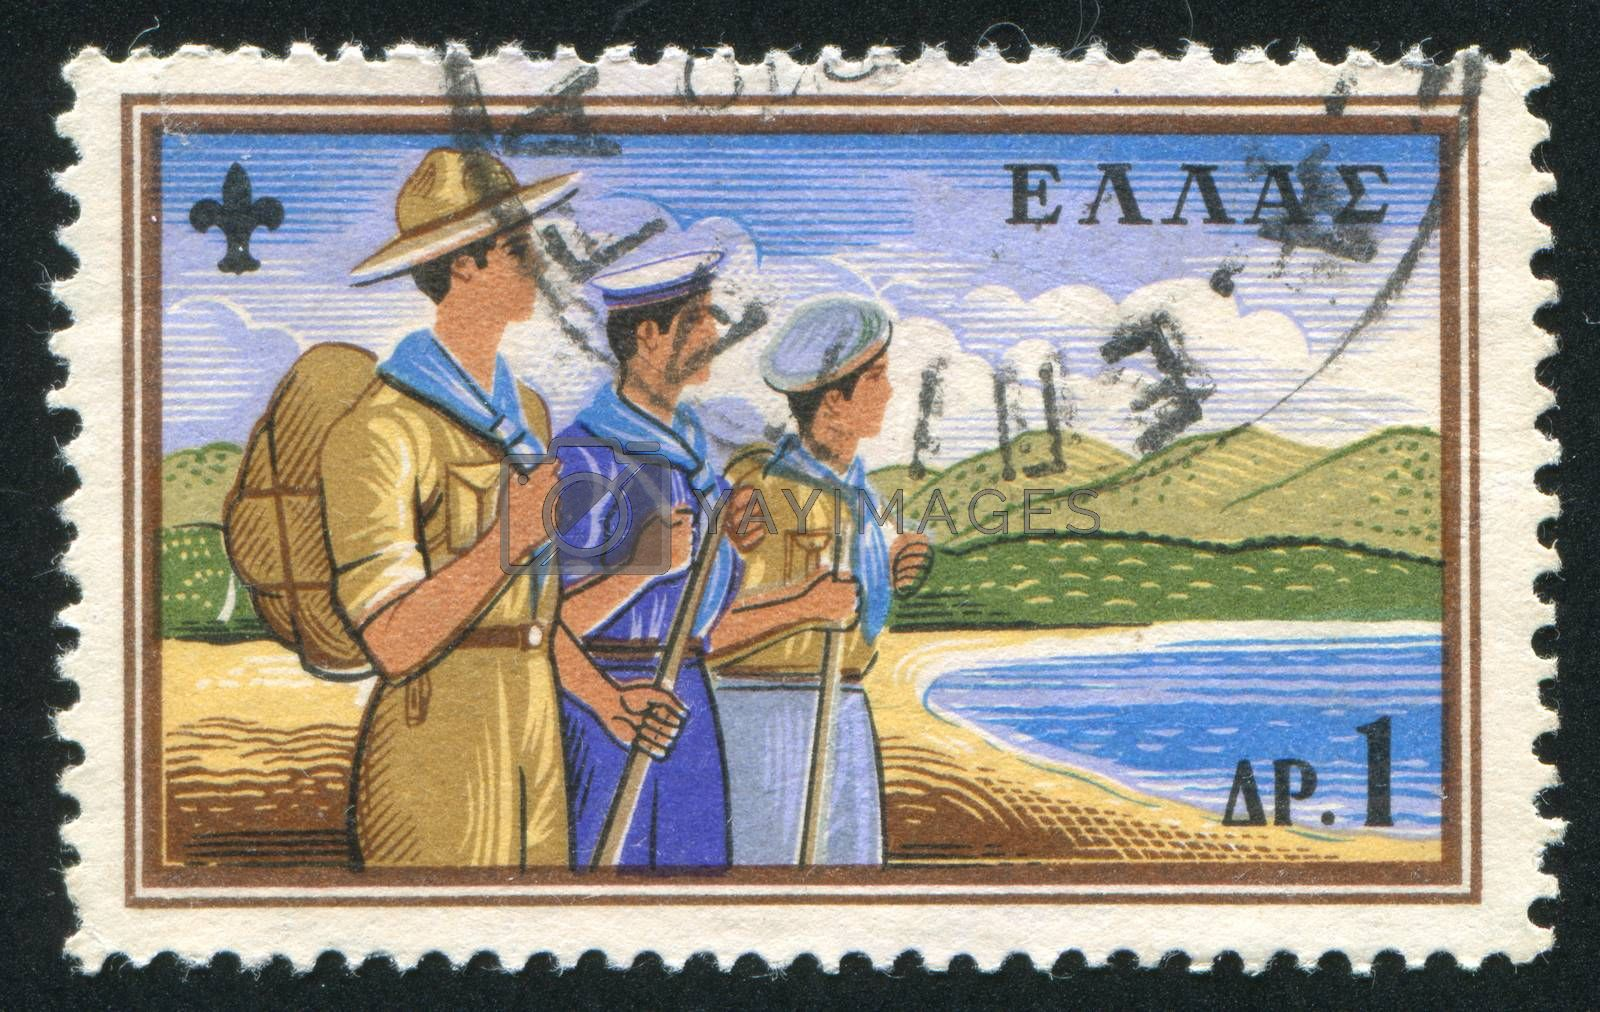 GREECE - CIRCA 1960: stamp printed by Greece, shows Boy Scout, Sea scout and air scout, circa 1960